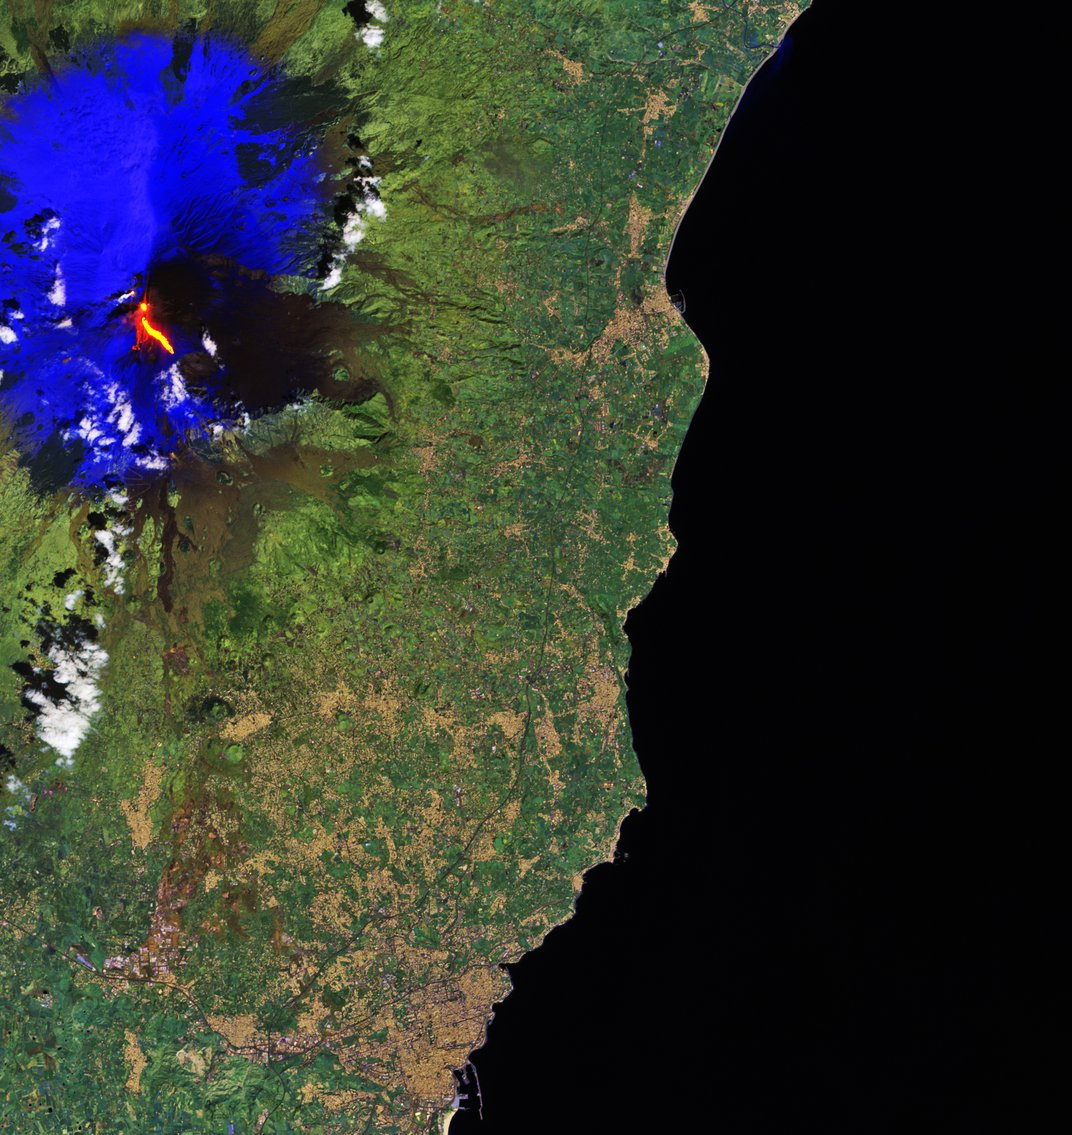 Mount Etna's Fiery Eruptions Are Visible From Space